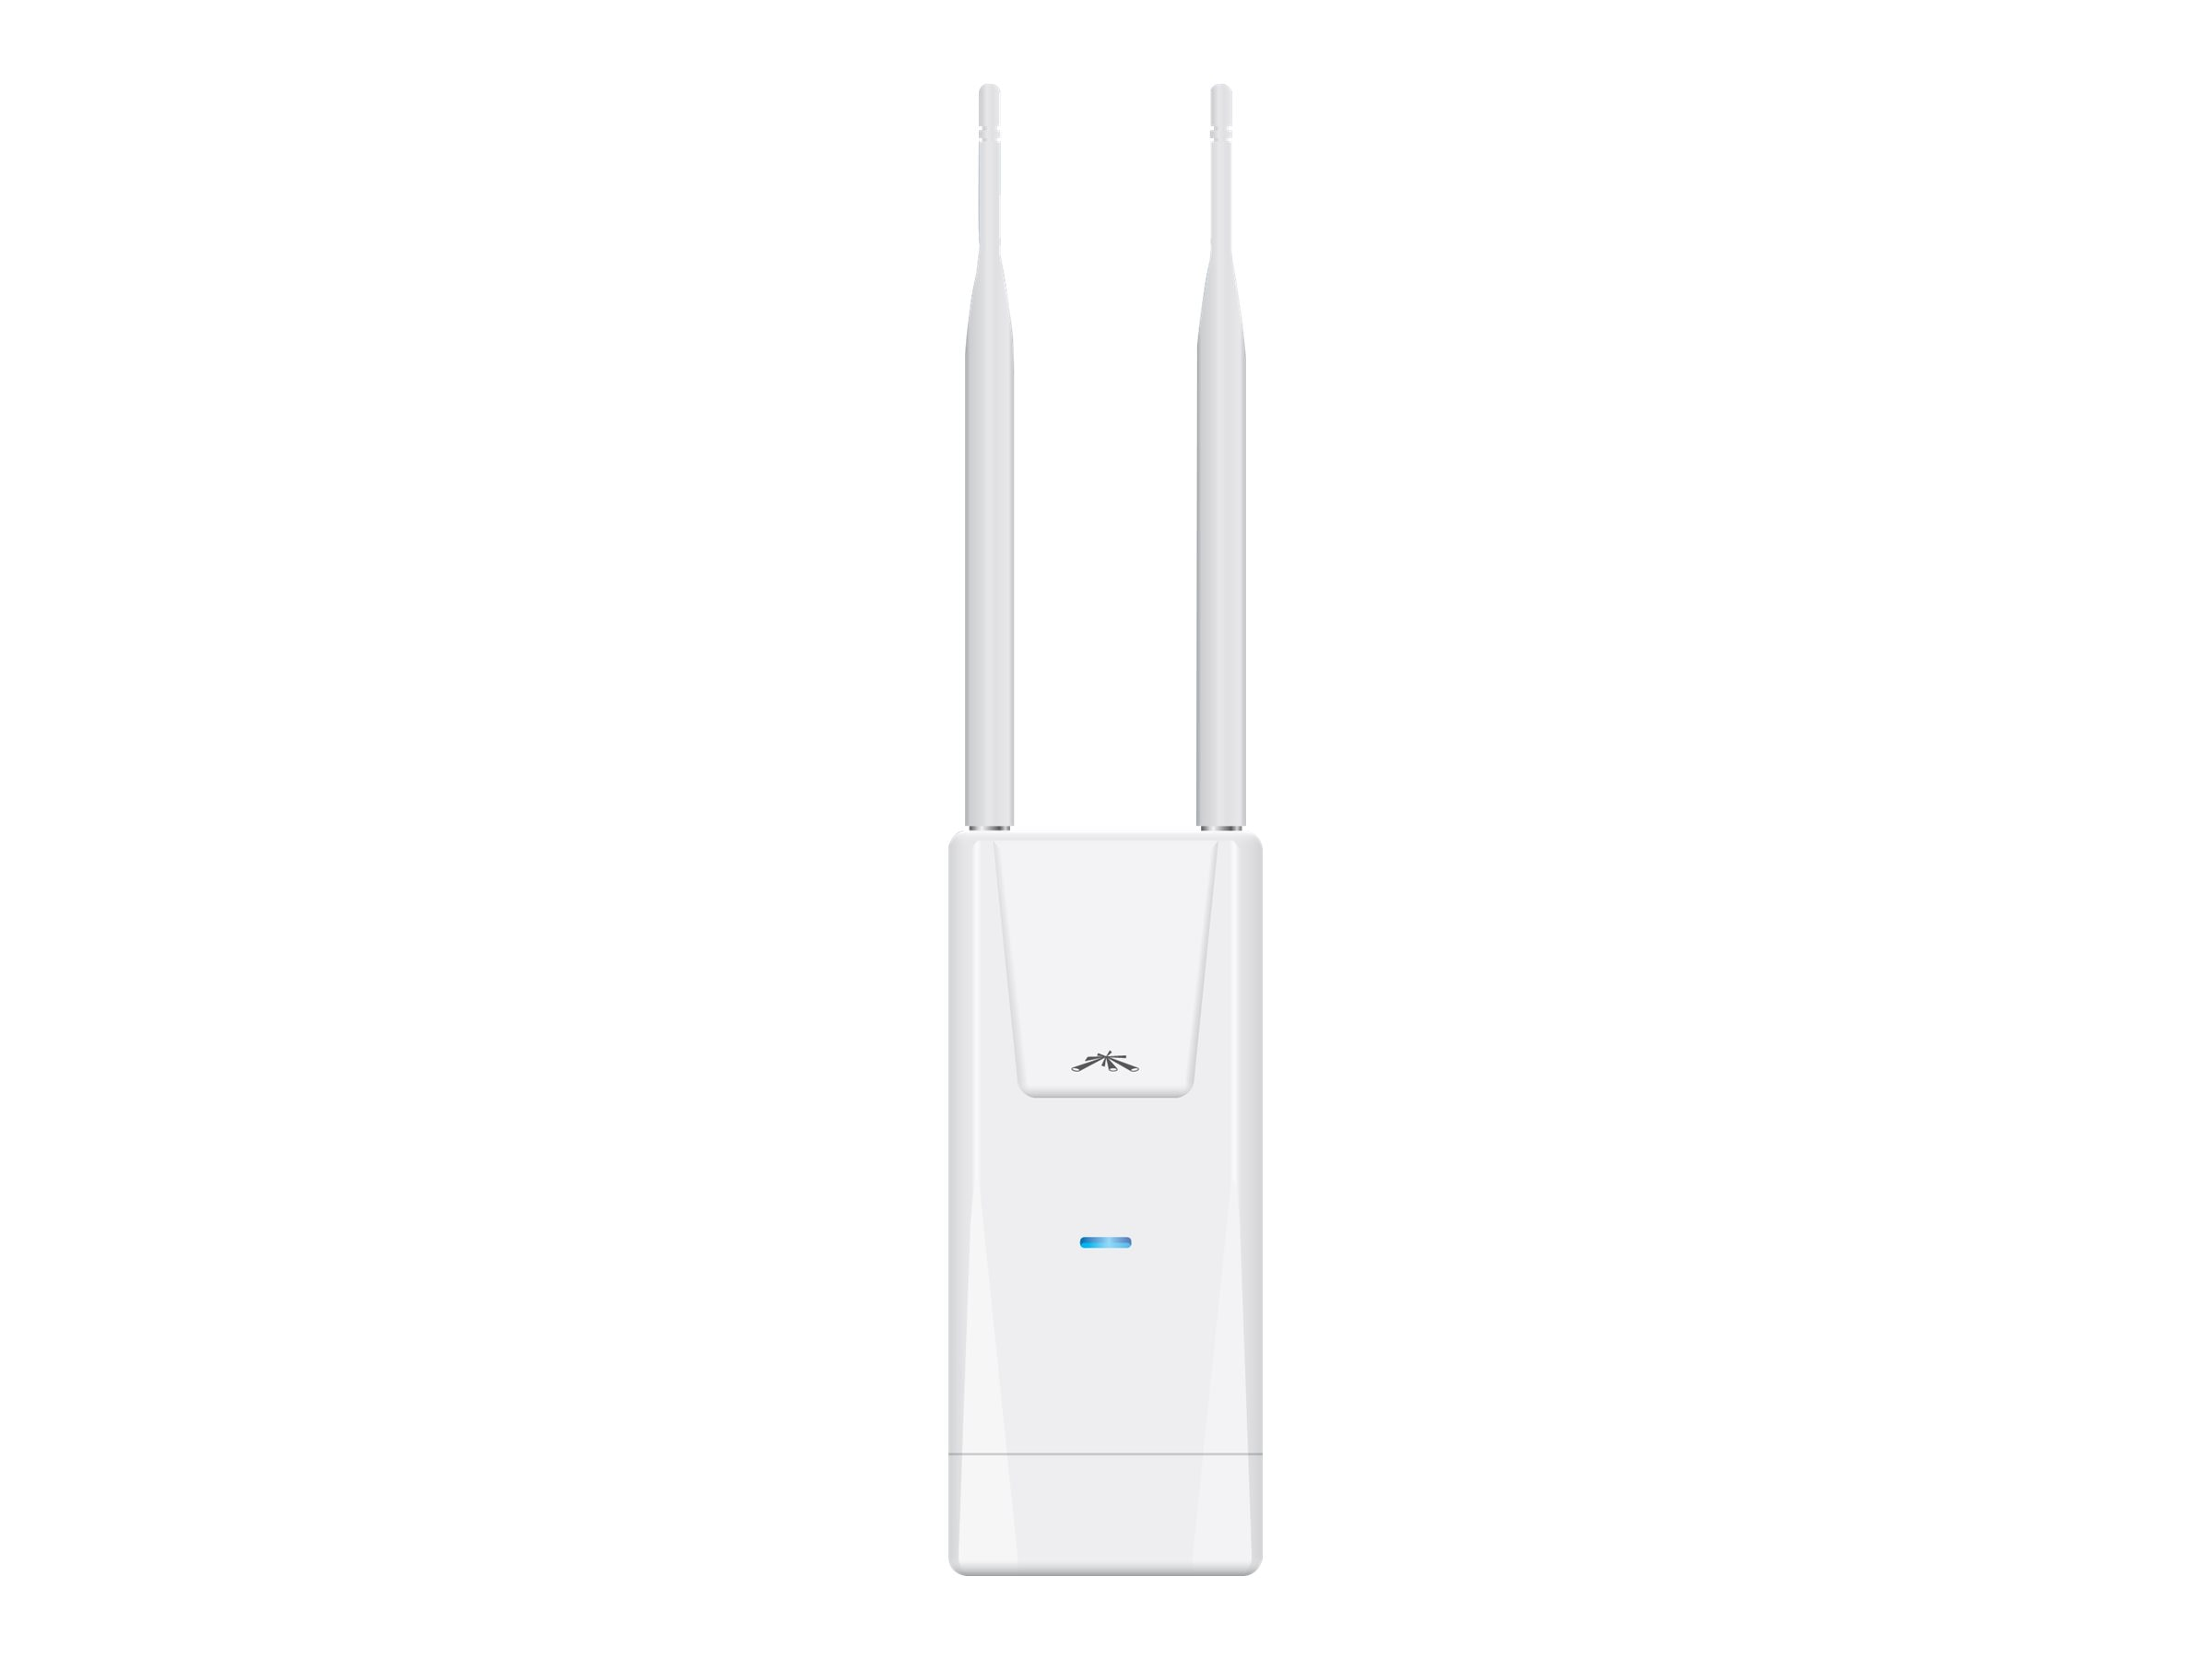 Ubiquiti UAP High Density Unifi Wireless, UAP-OUTDOOR+, 16928612, Wireless Access Points & Bridges